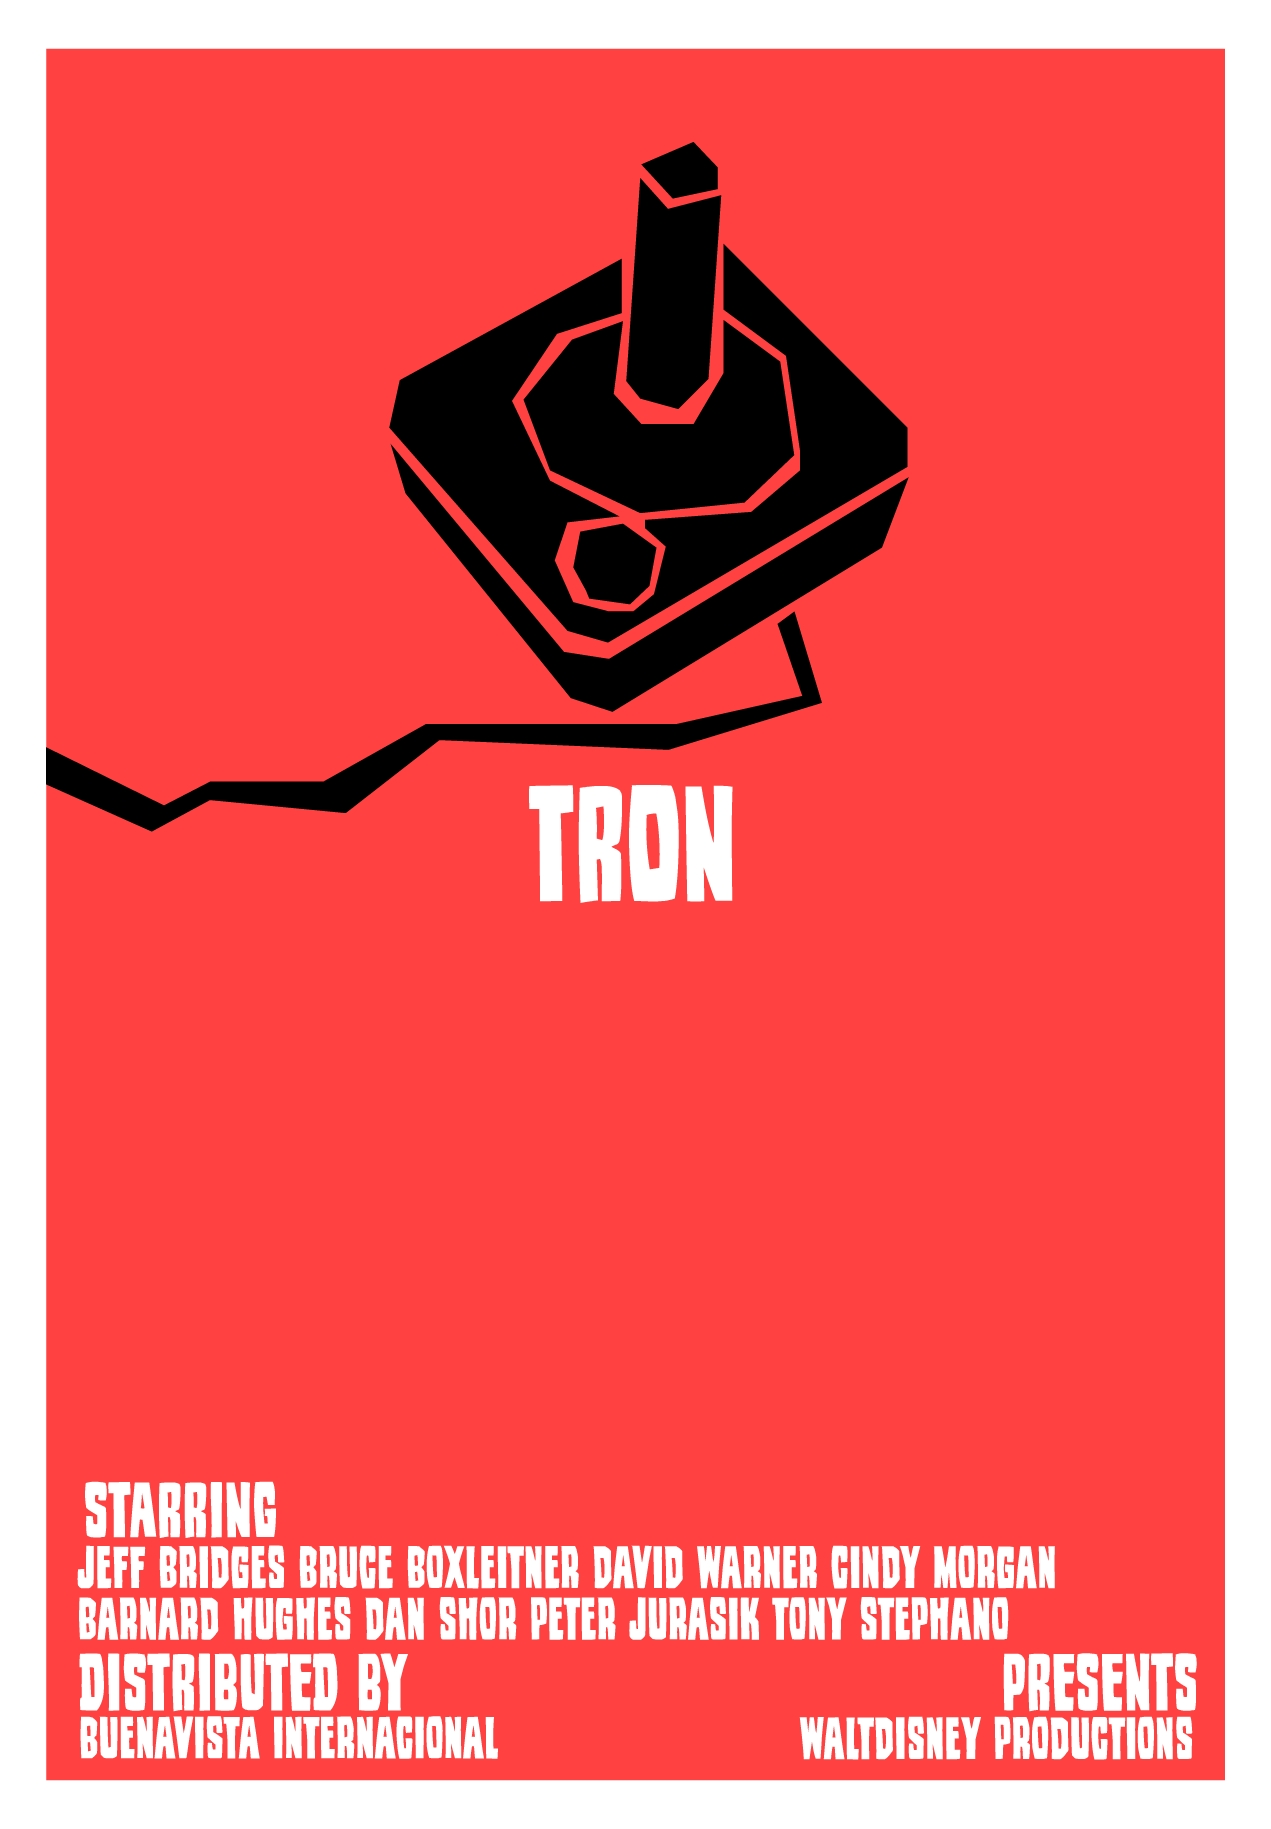 tron_posters_2020_3